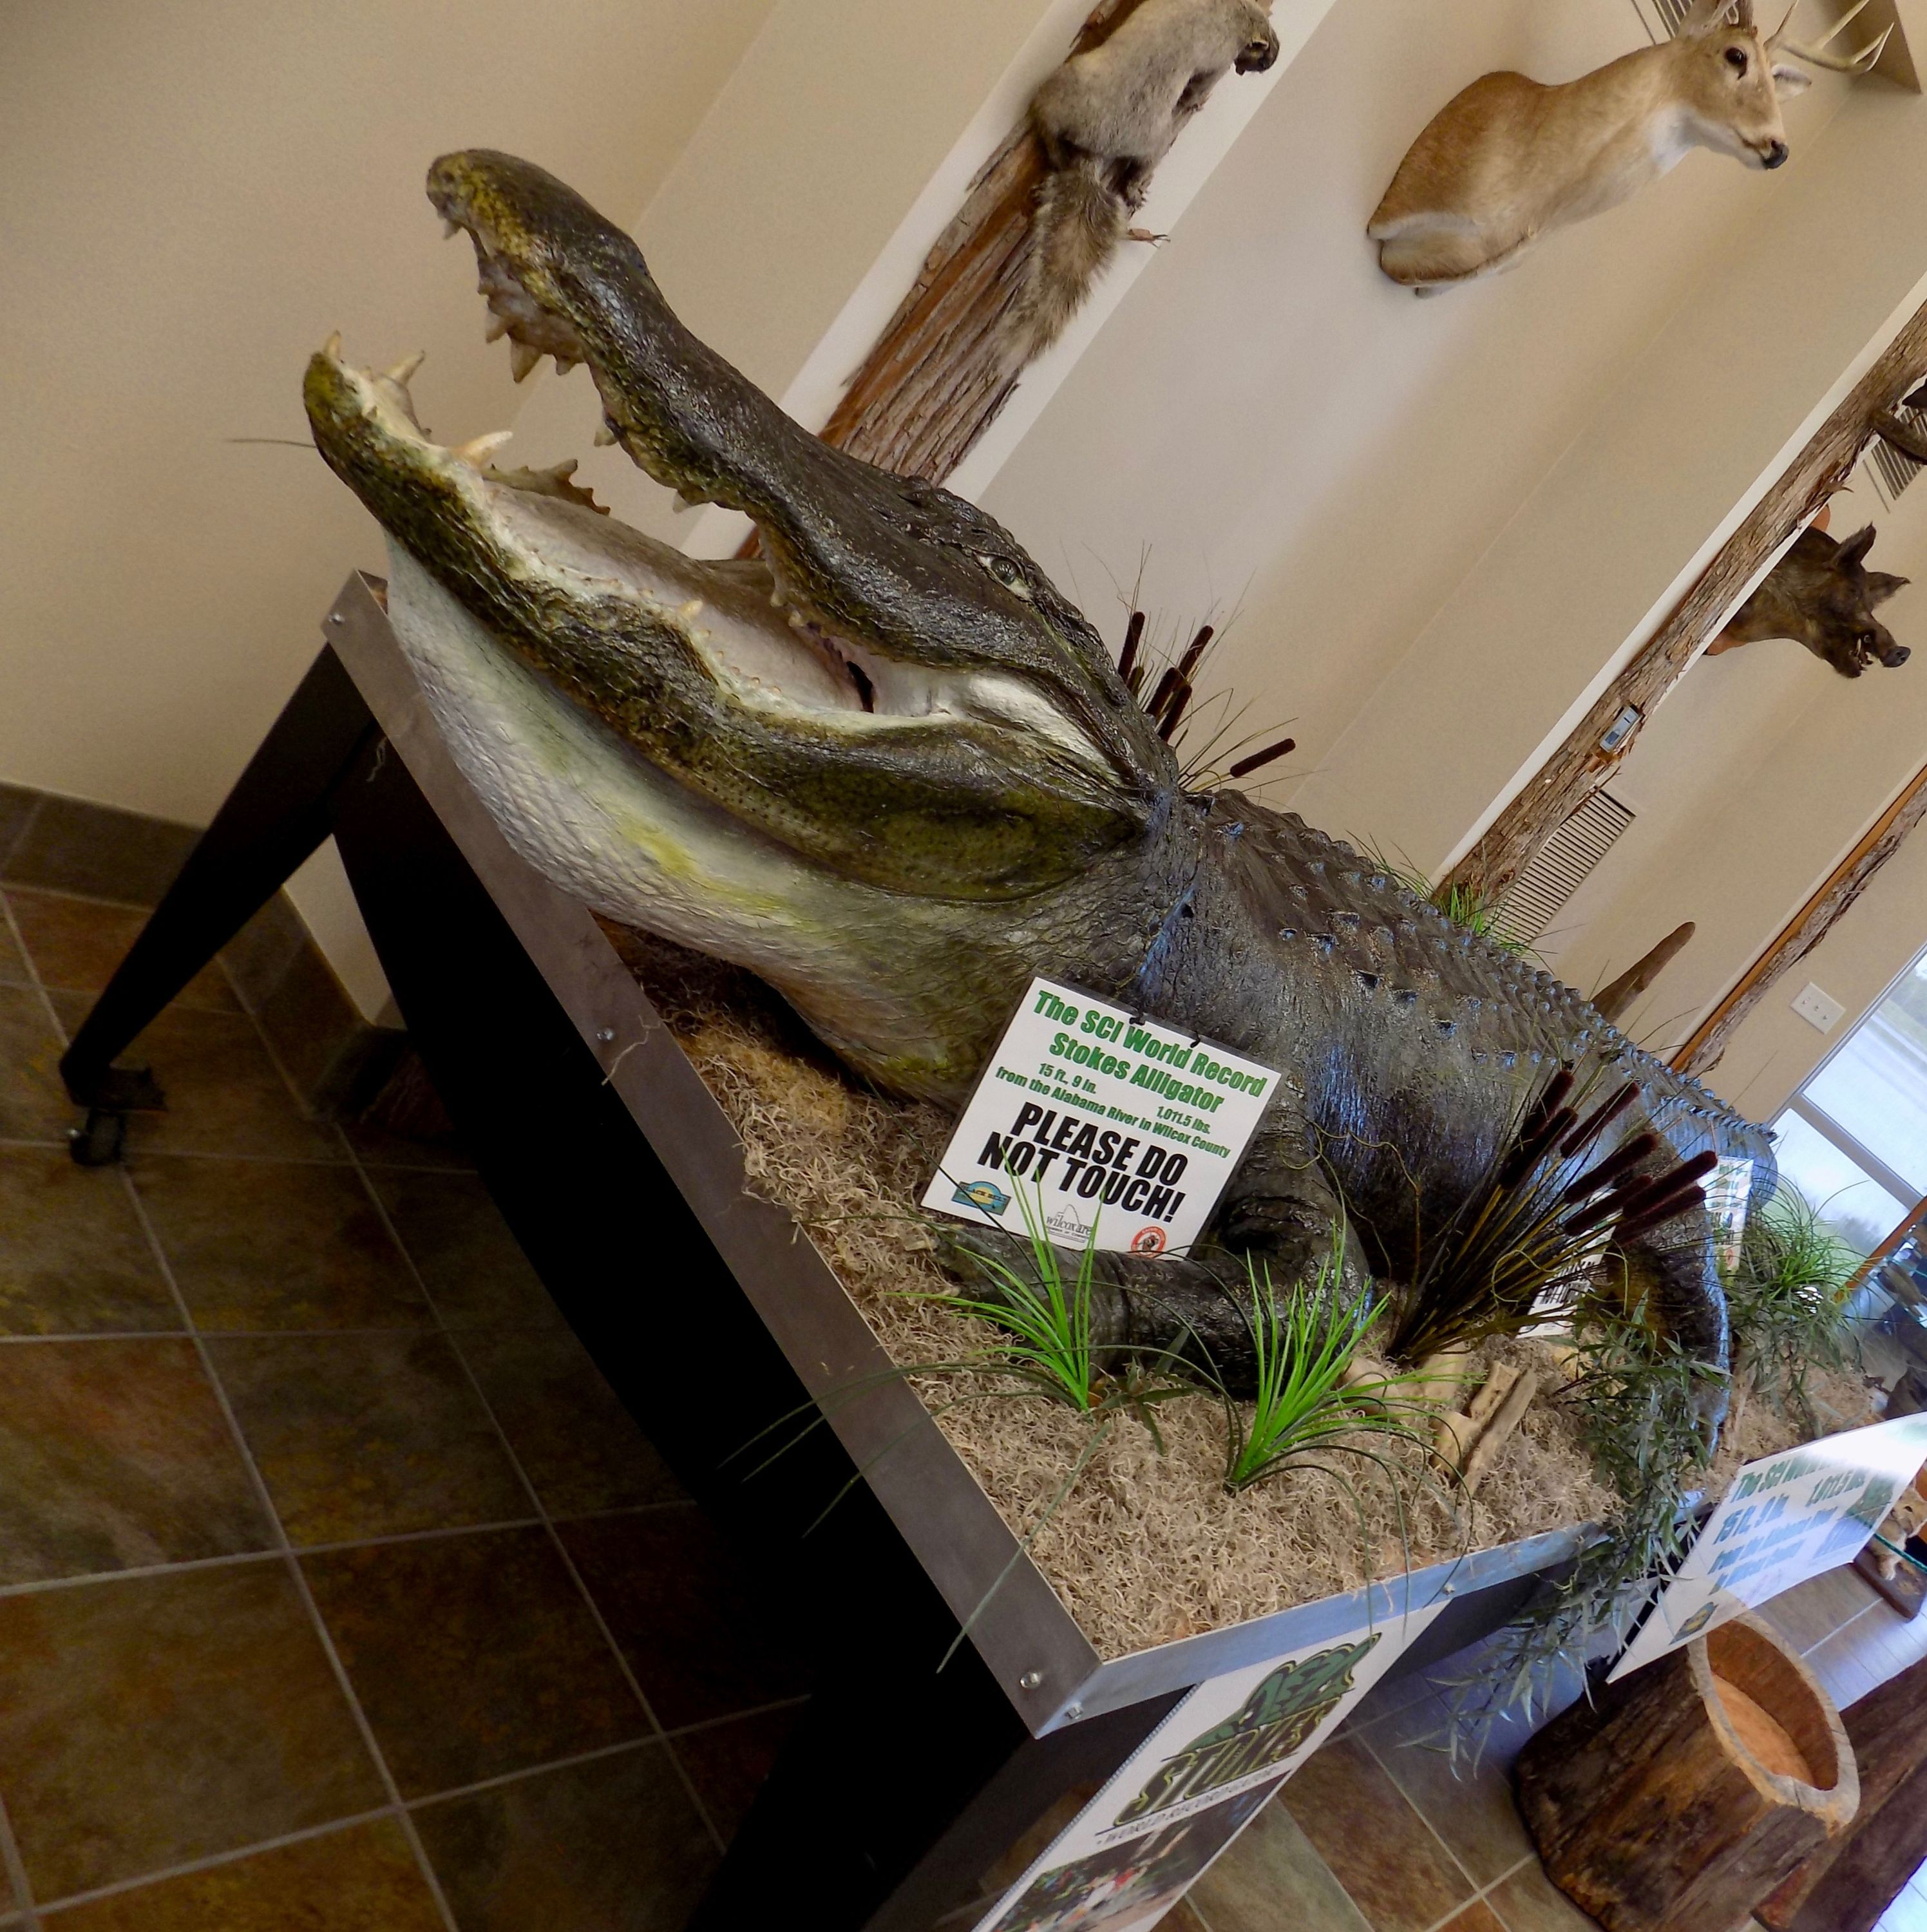 Mandy Stokes' record-setting alligator.